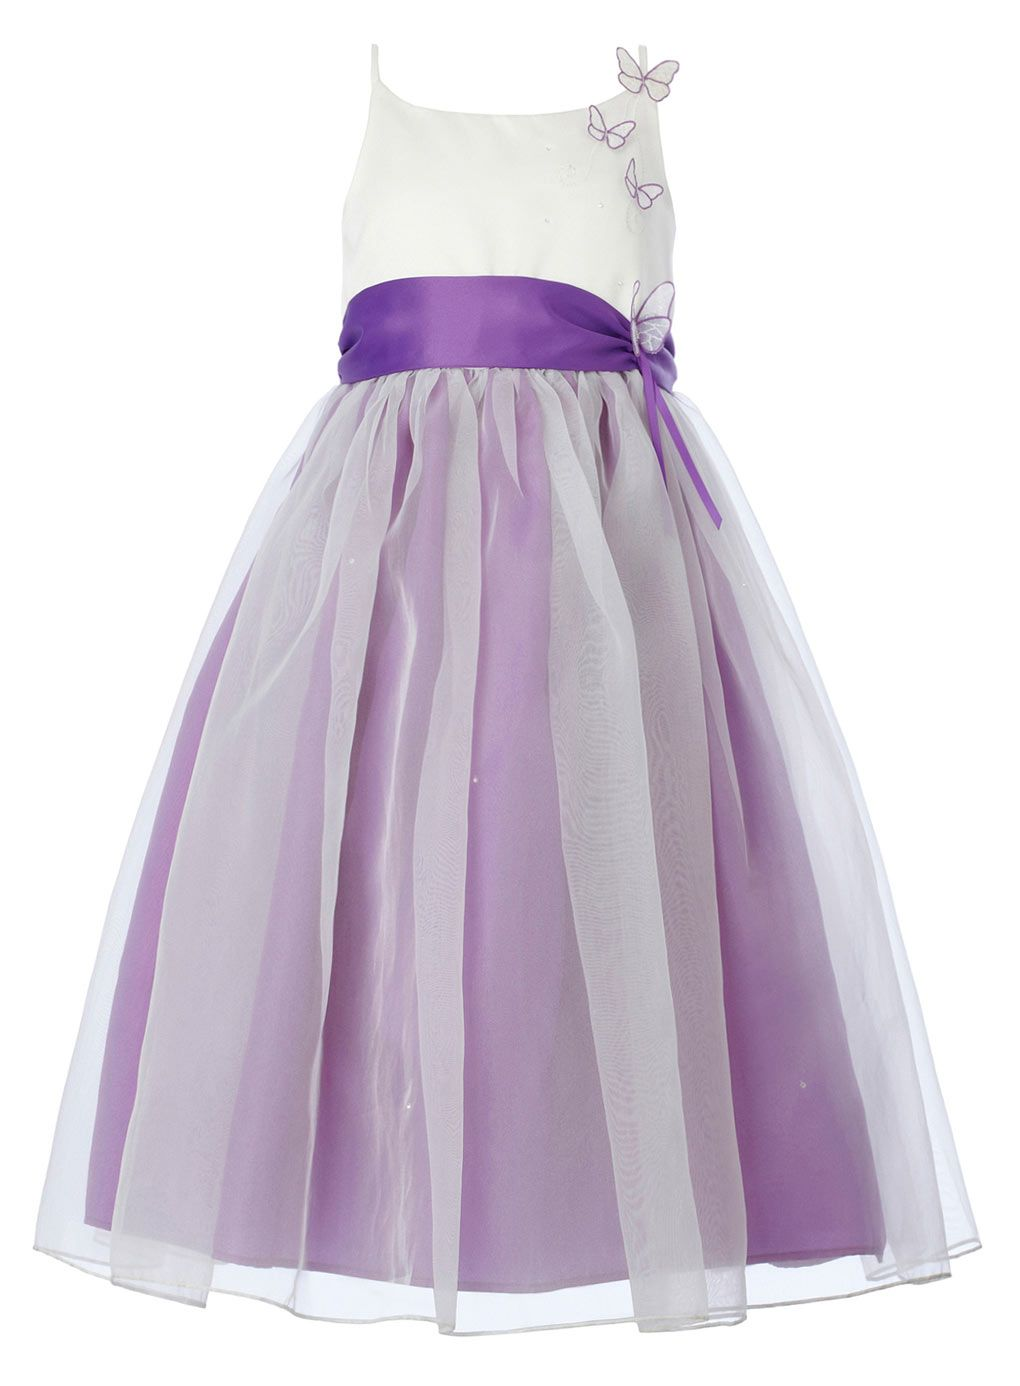 Lela butterfly purple bridesmaid dress child dresses young lela butterfly purple bridesmaid dress child dresses young bridesmaids ombrellifo Image collections